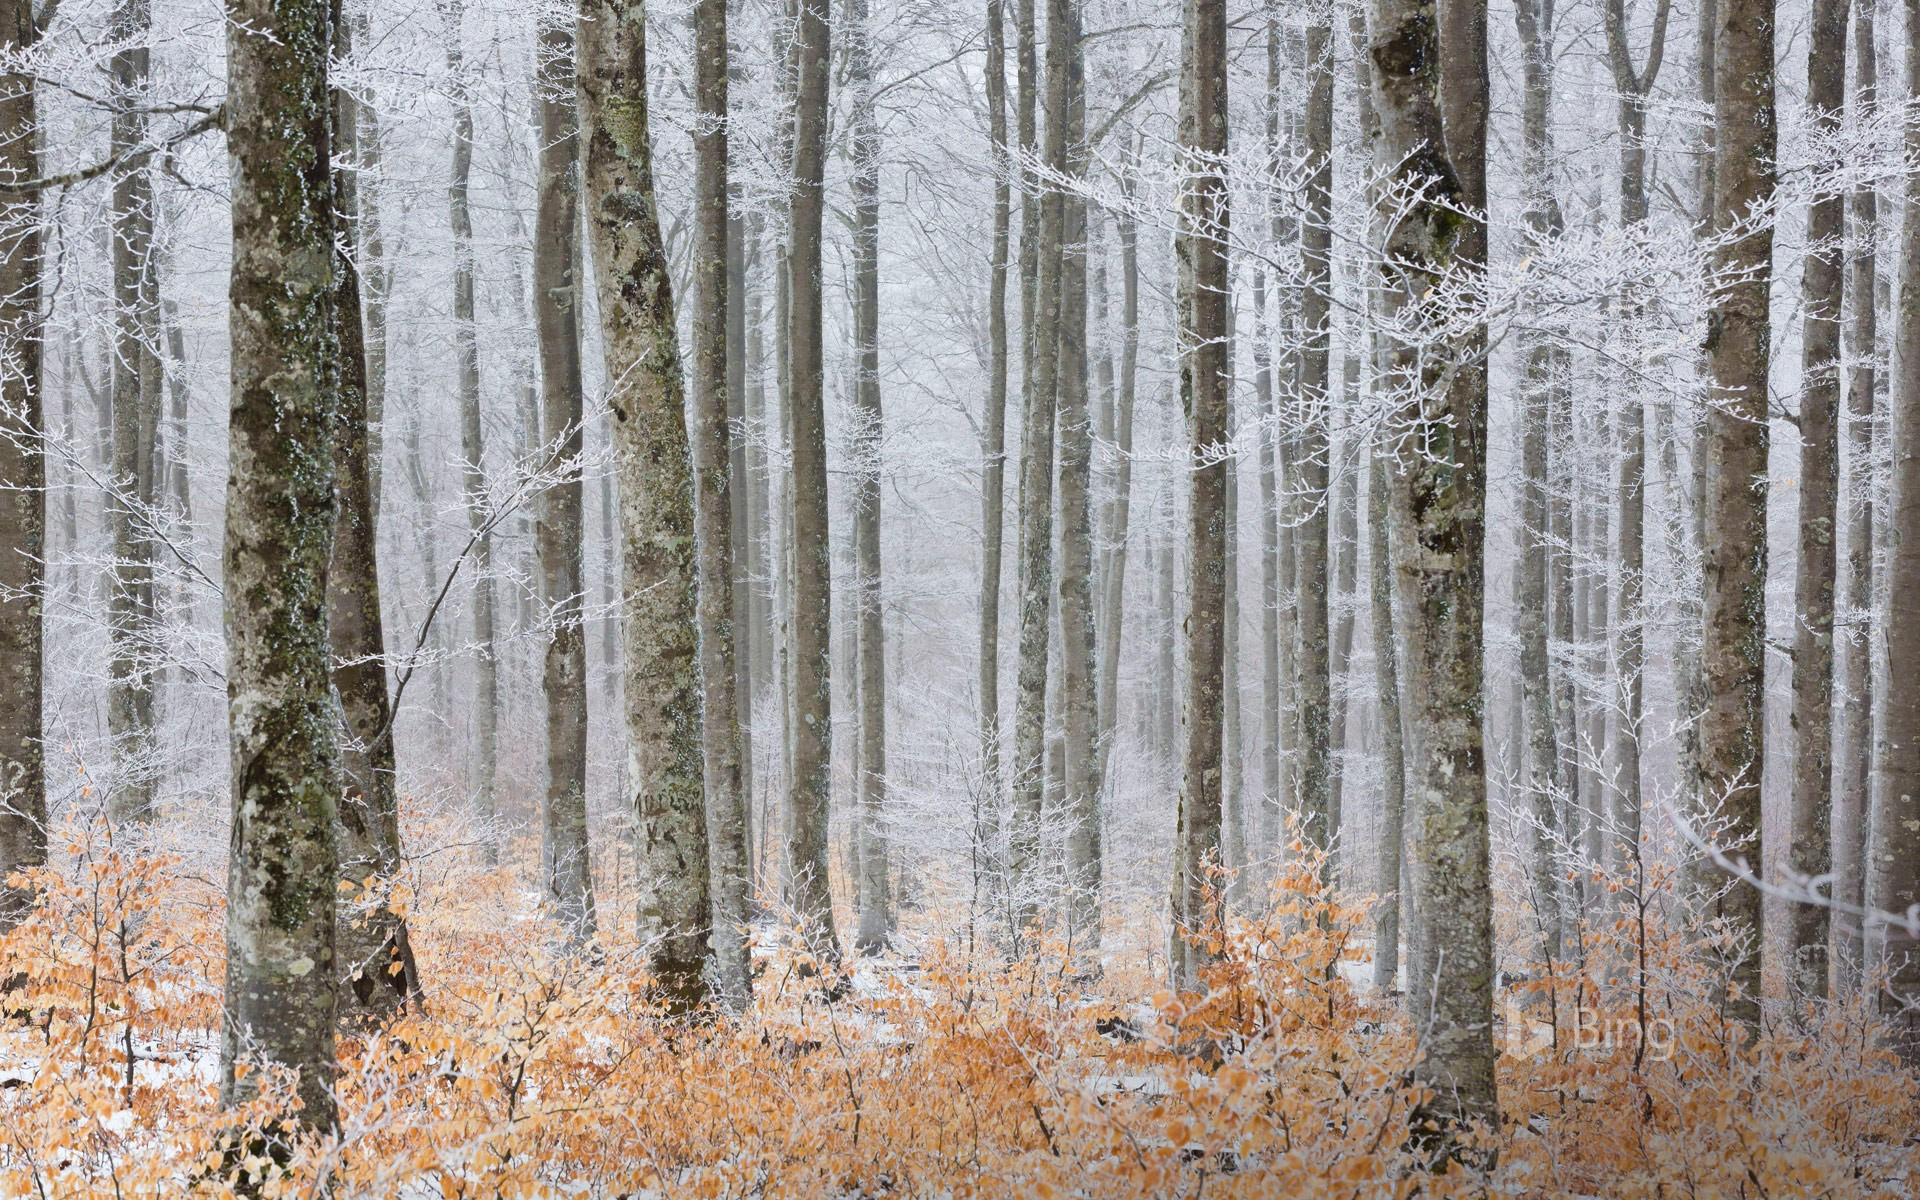 Beech forest in frost, Serreyrède Path, Cévennes National Park, France (© Hemis/Alamy Stock Photo)